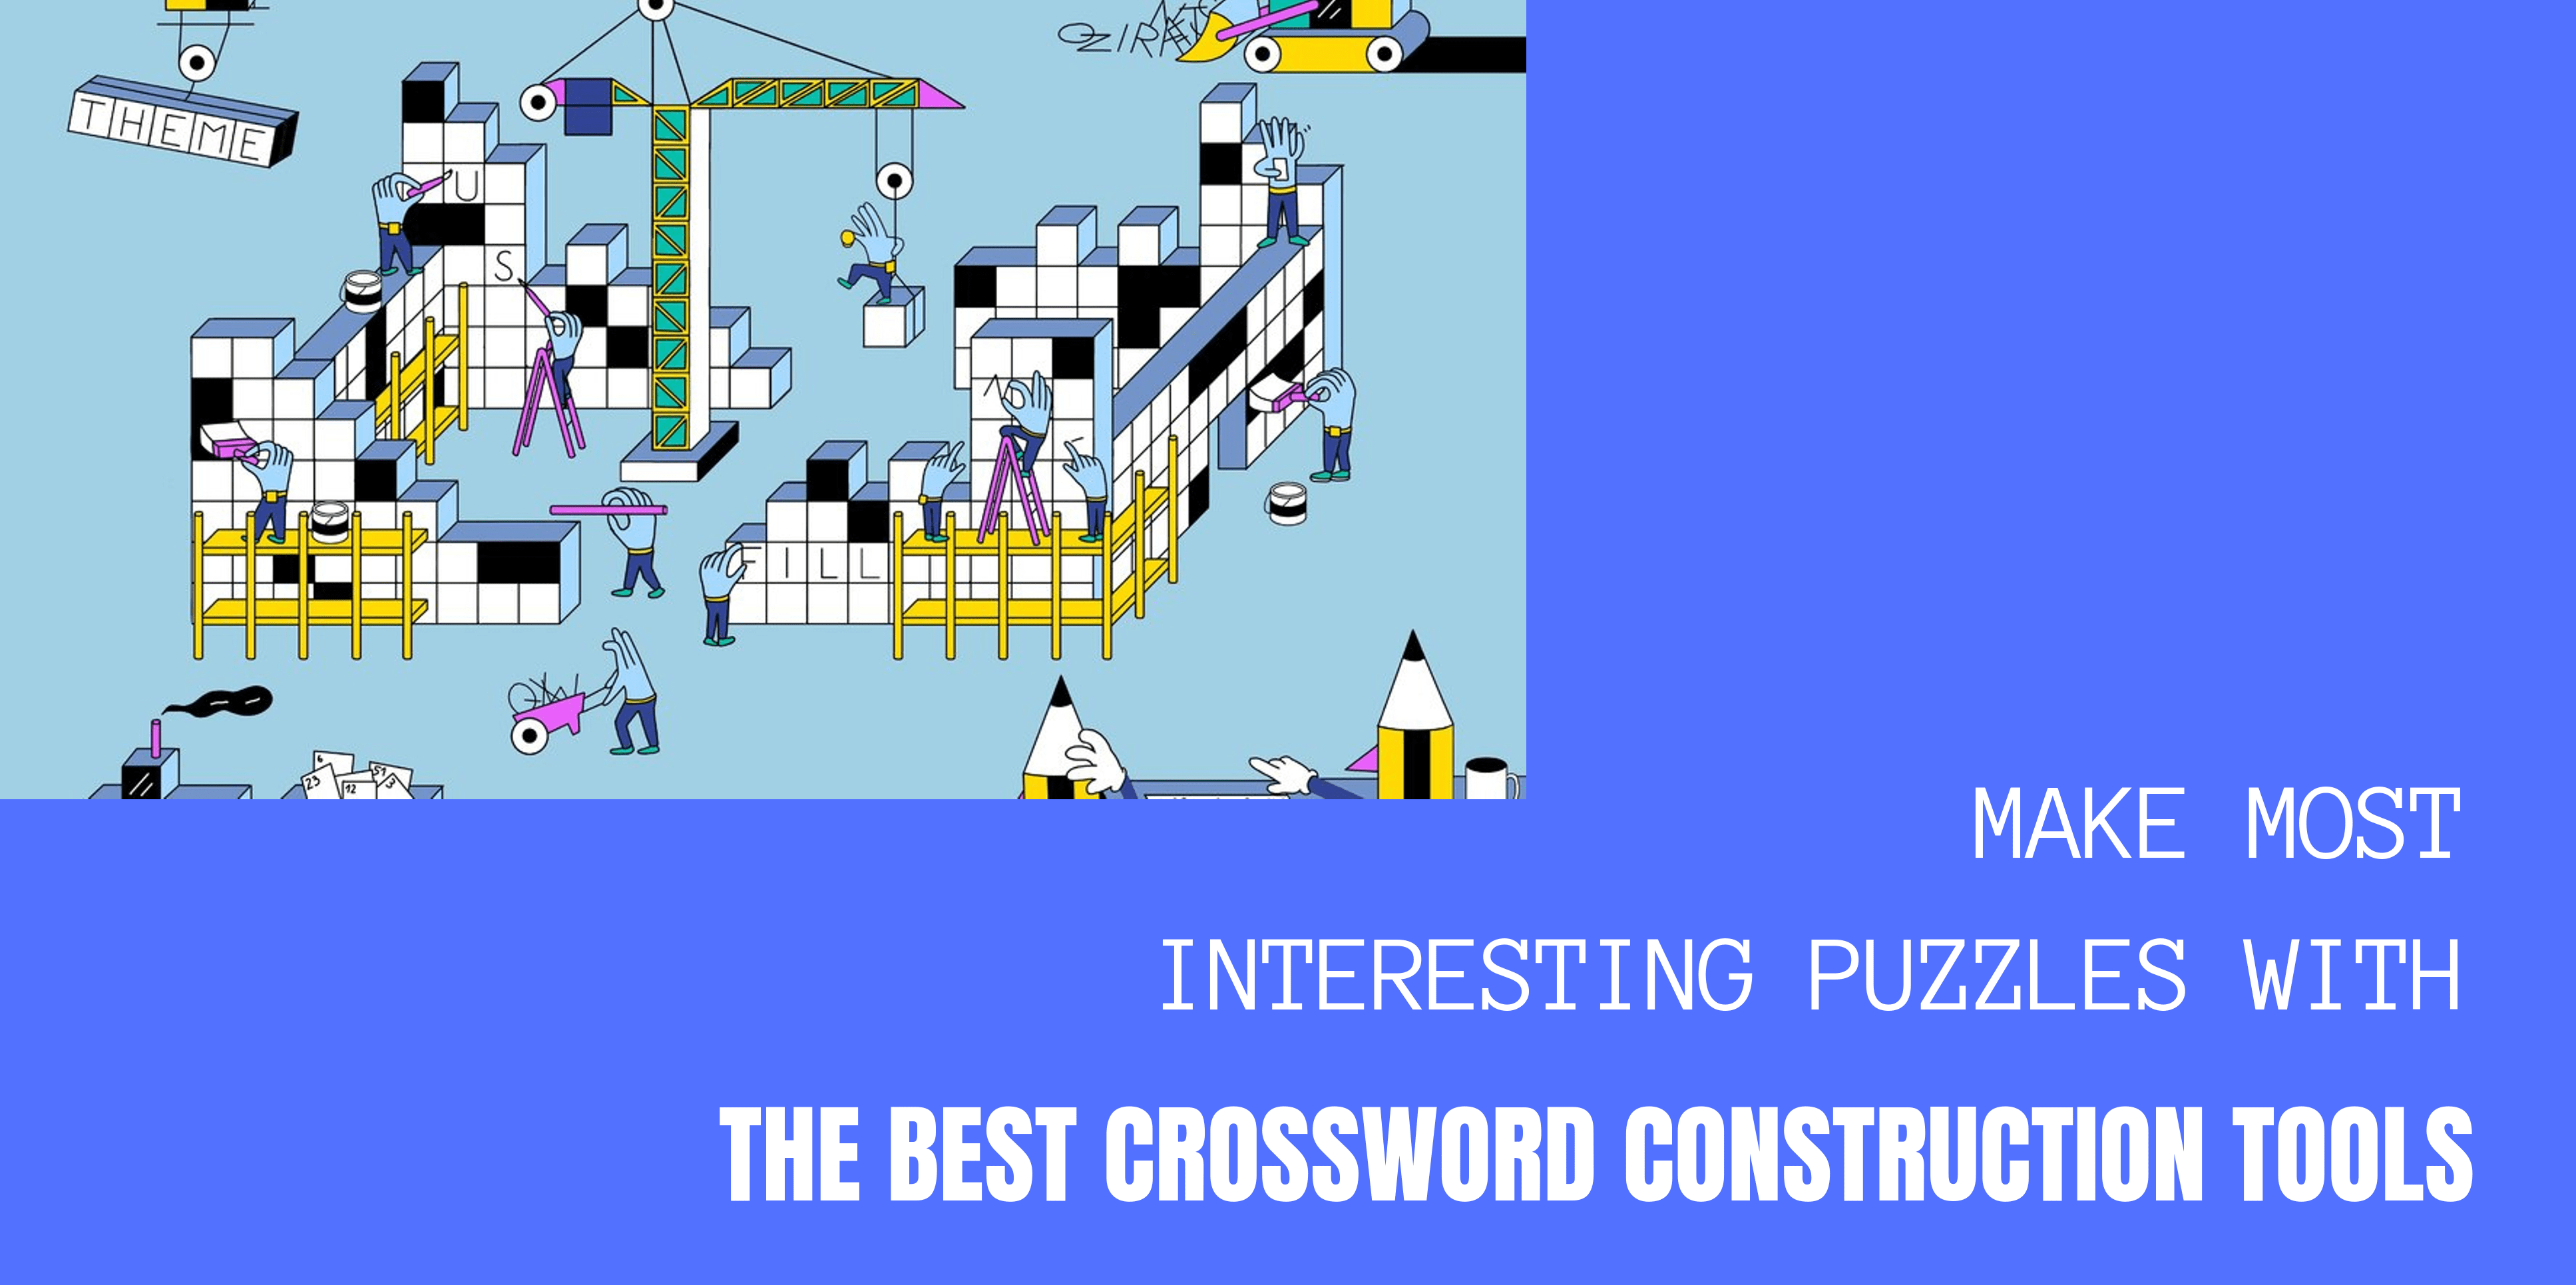 crossword compiler online,  crossword compiler,  crossword maker,  crossword compilers,  crossword puzzle maker,